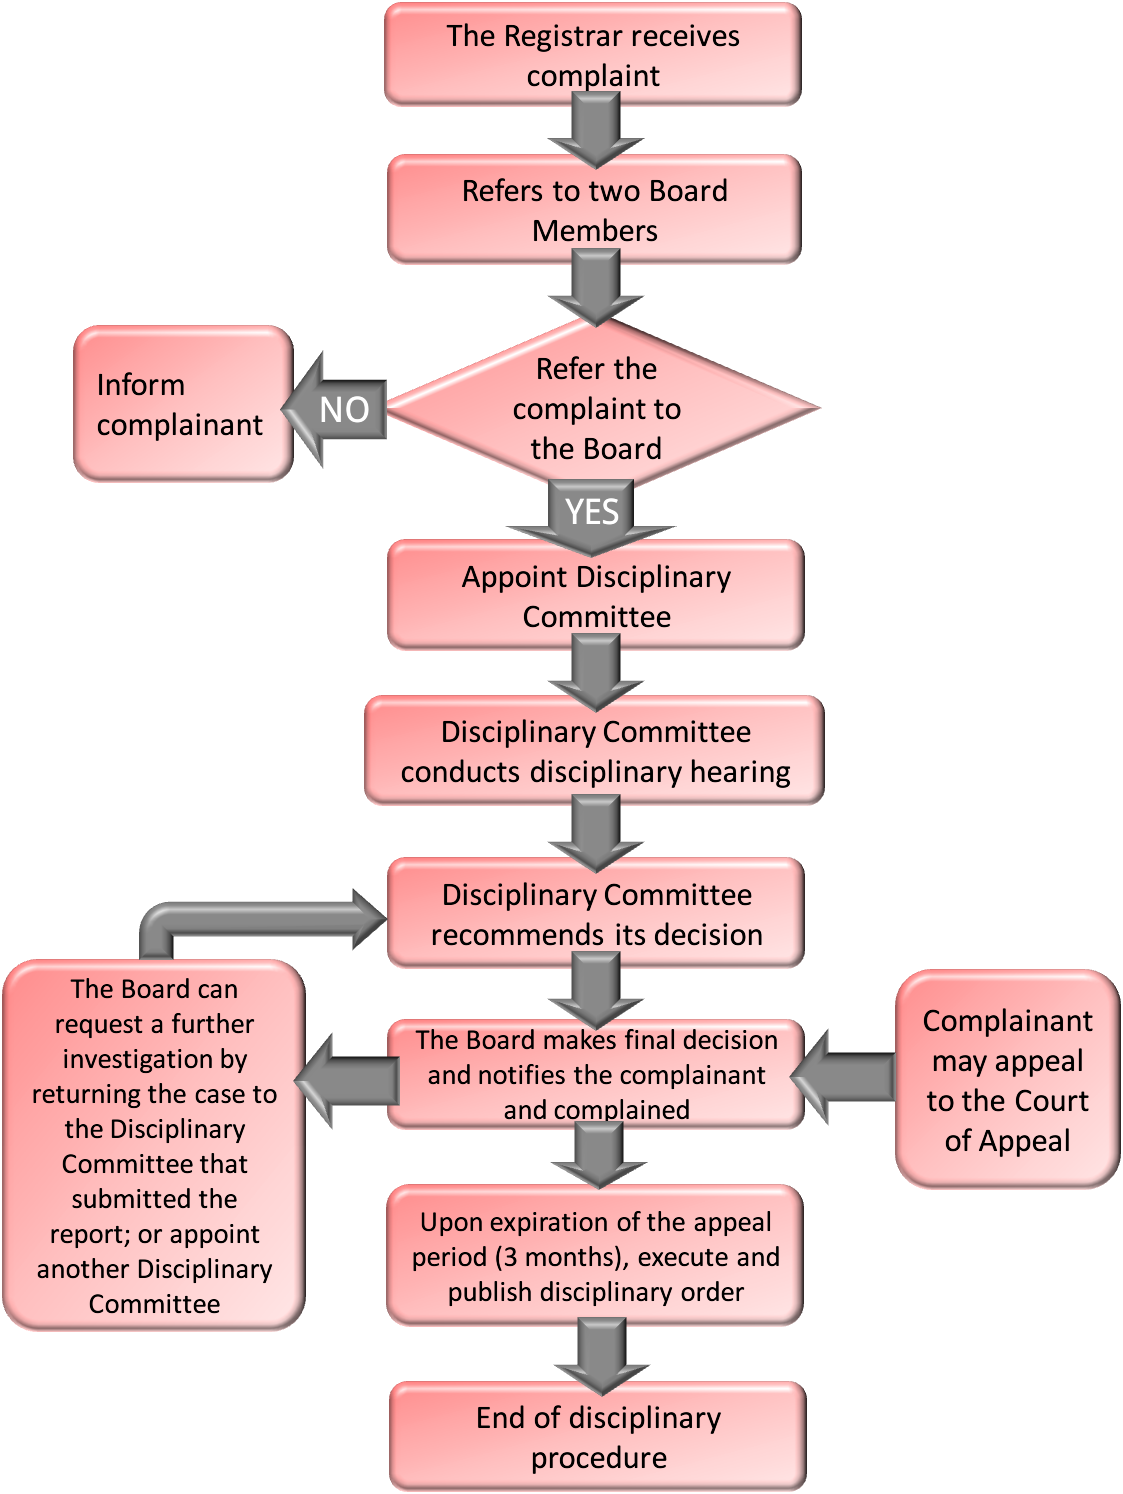 Issue 38 102016 social workers registration board flow chart of the procedures of processing complaints thecheapjerseys Image collections